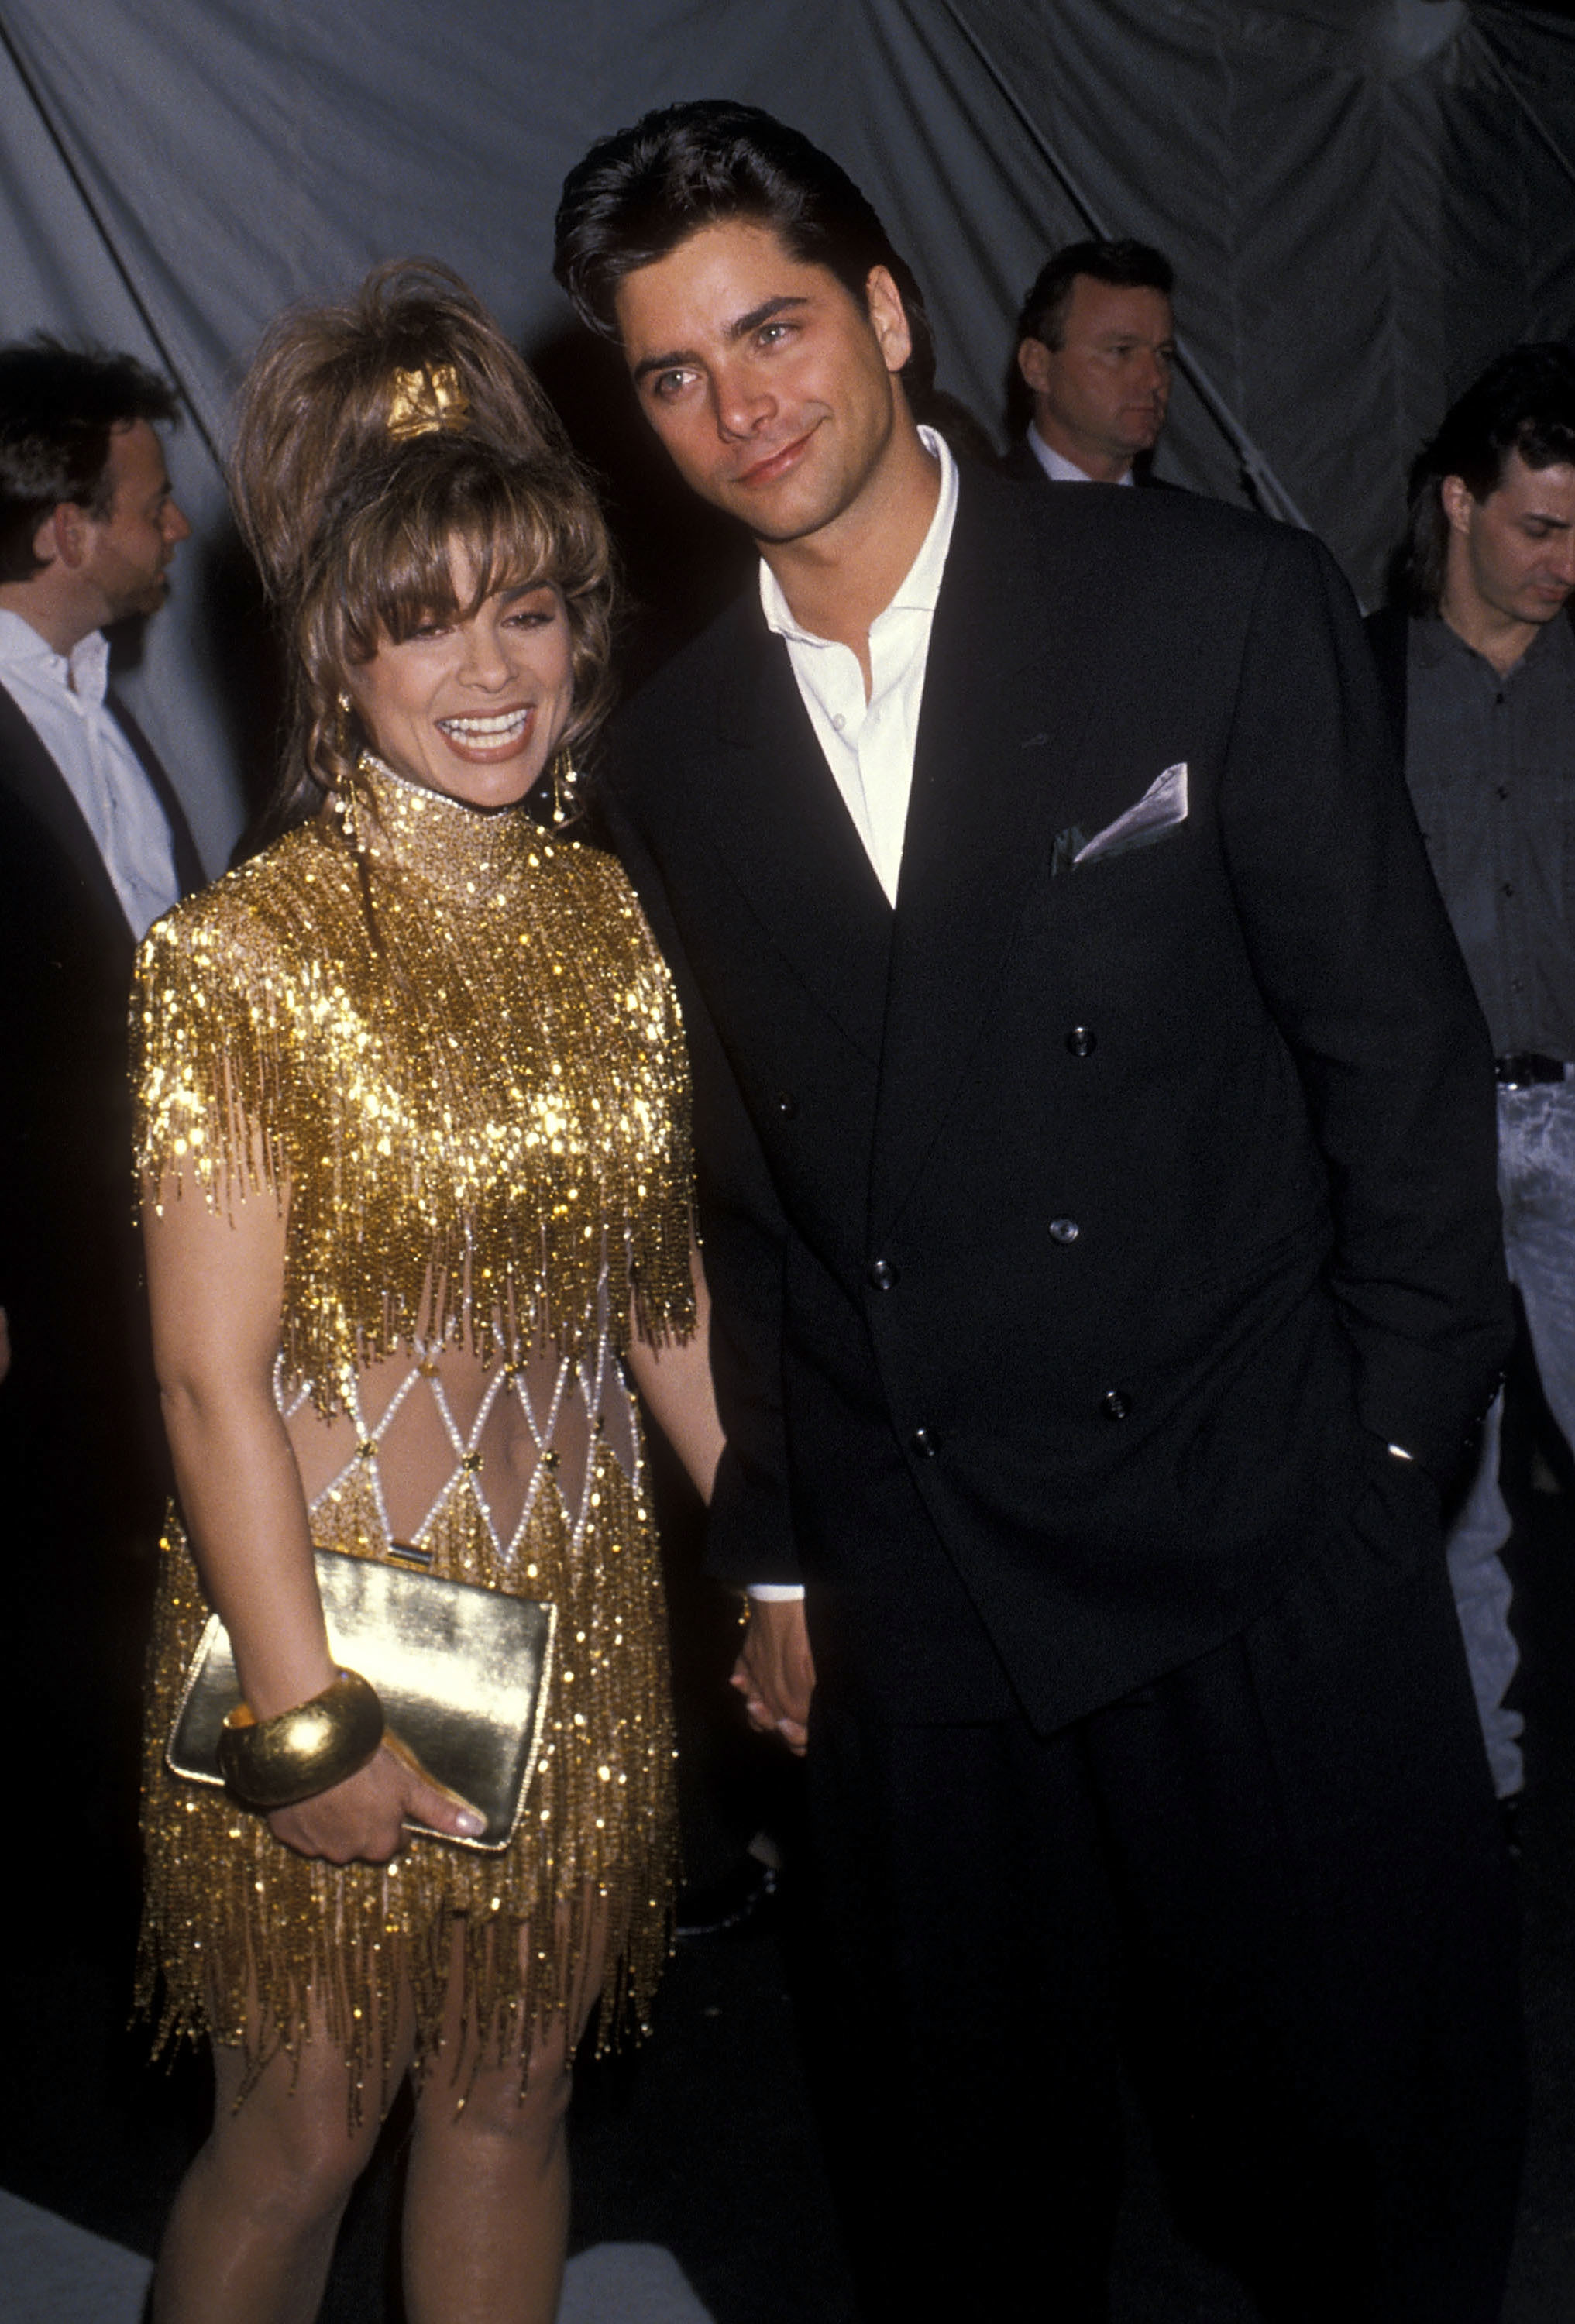 Paula Abdul and John Stamos attend the 32nd Annual Grammy Awards at the Shrine Auditorium in Los Angeles on Feb. 21, 1990.